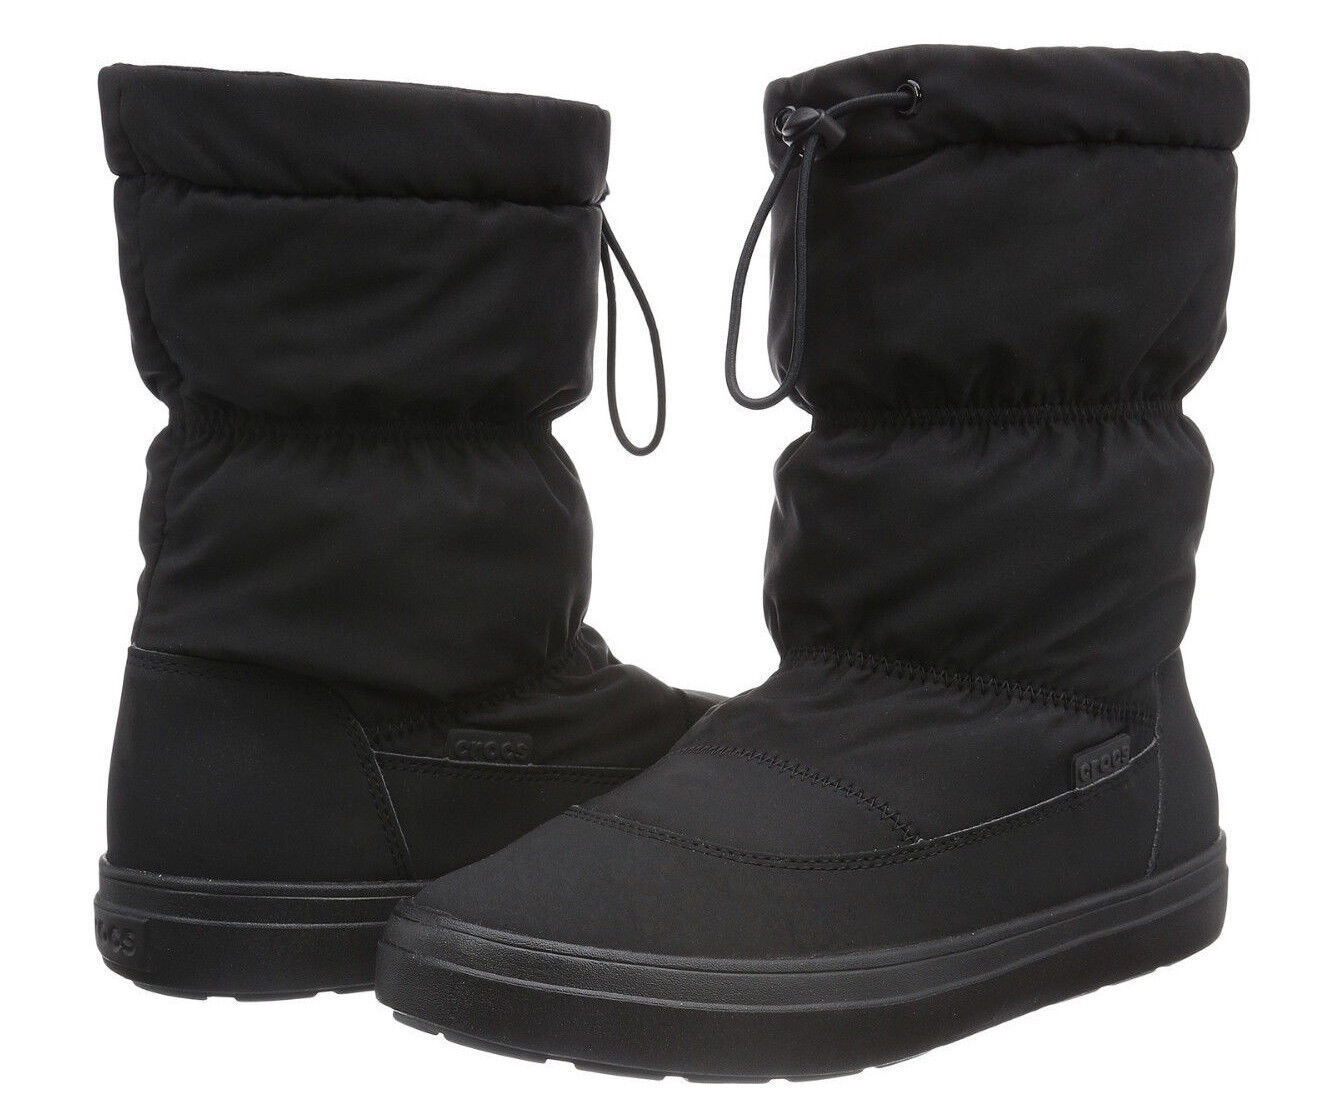 Crocs Women's LodgePoint Pull-on Black Boot (303422-001) - Size 6 NWOB